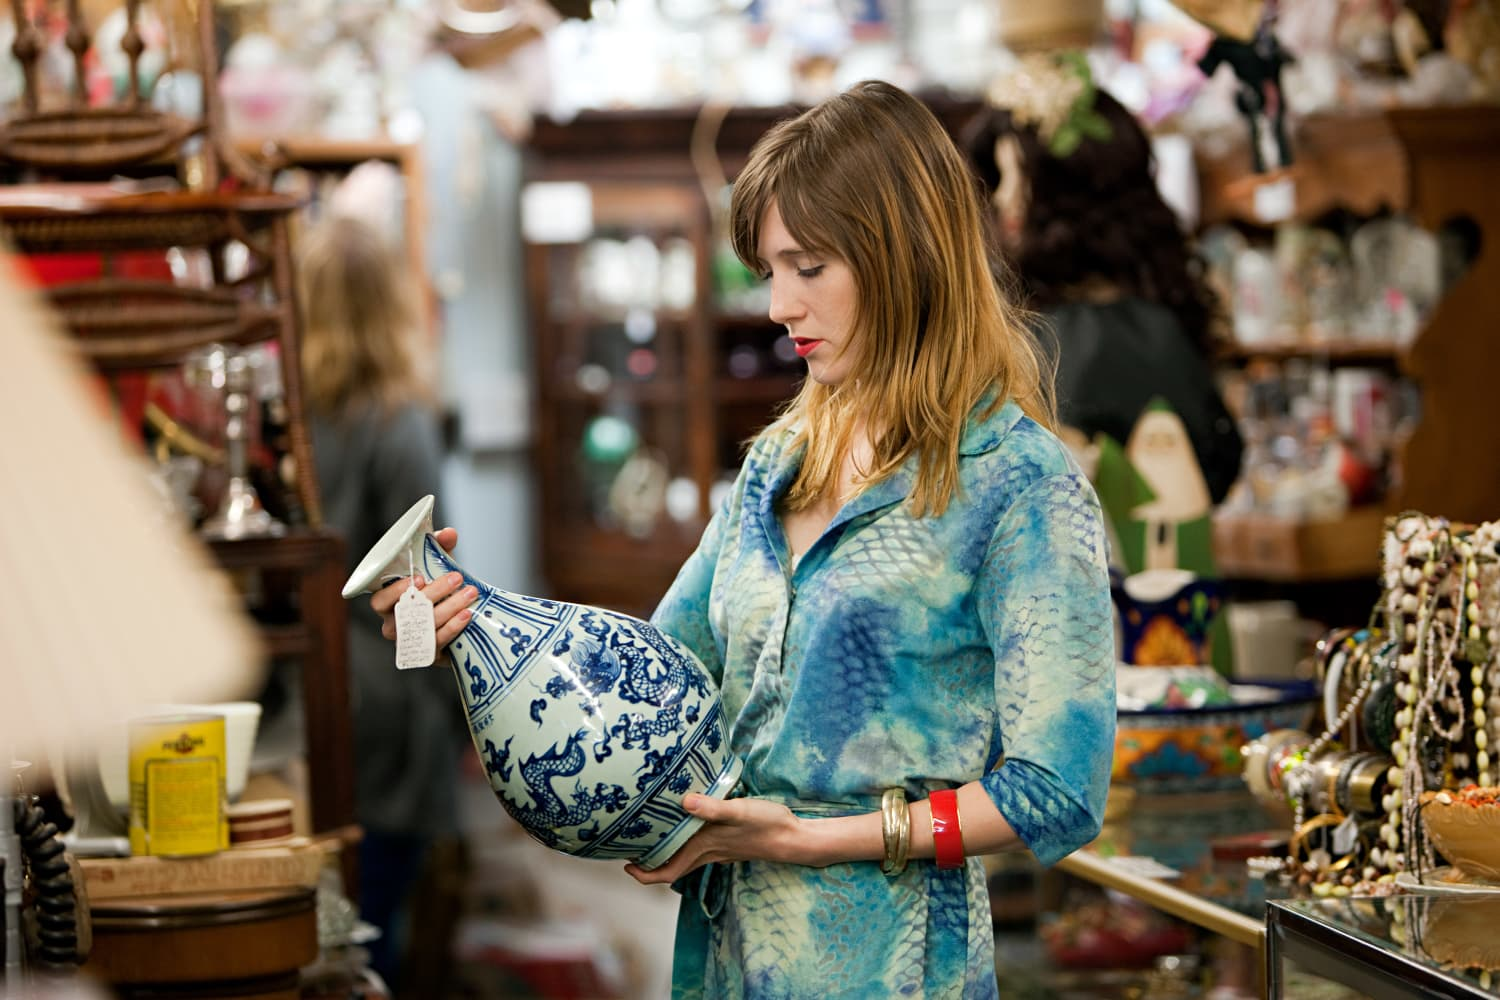 Do You Live in One of the Top 10 (or 25) Cities for Thrift Shopping? If So, We're Jealous!